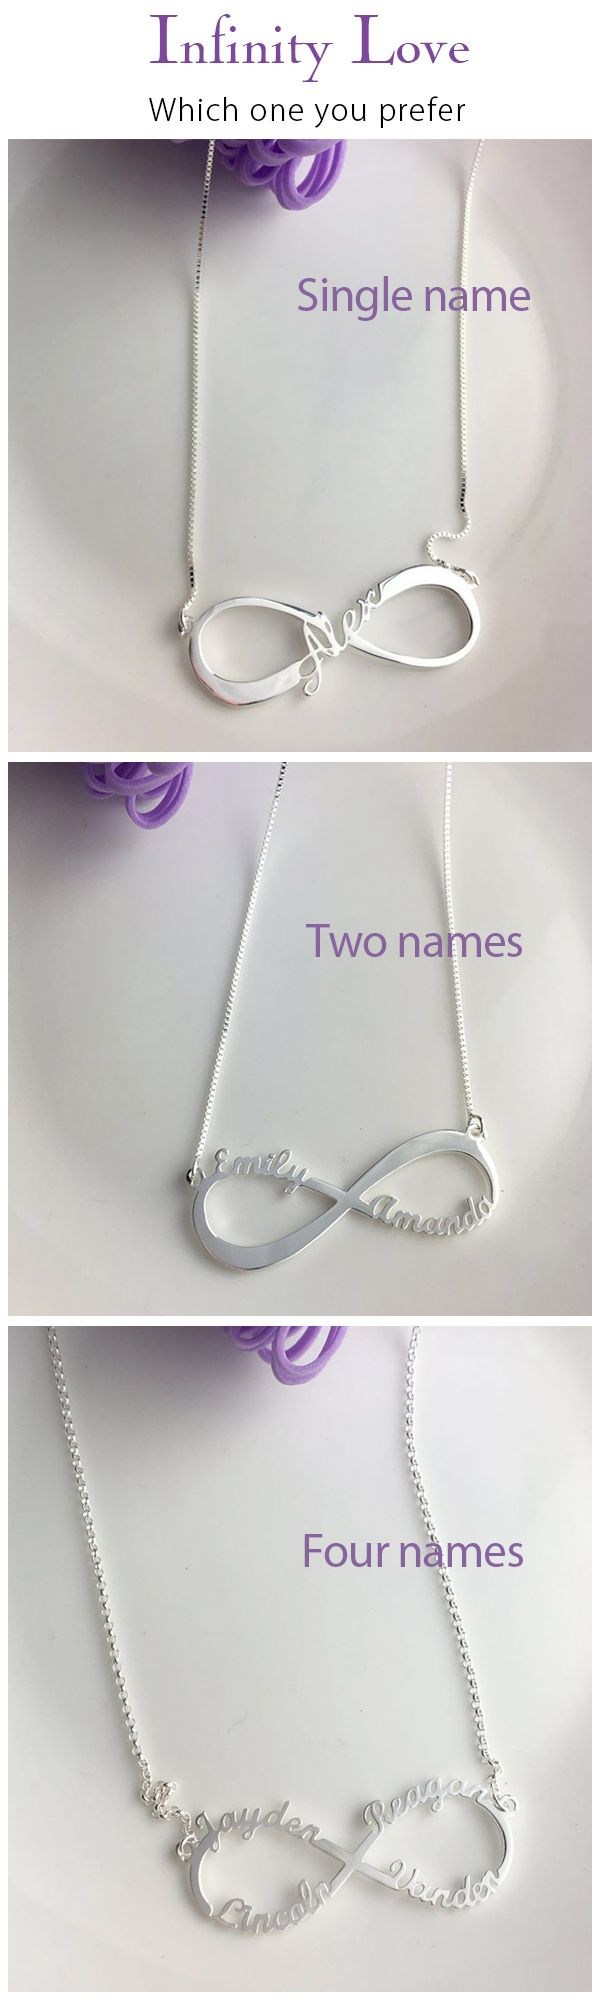 d93edfca972df Personalized Infinity Symbol Necklace Double Name | Jewelry ...